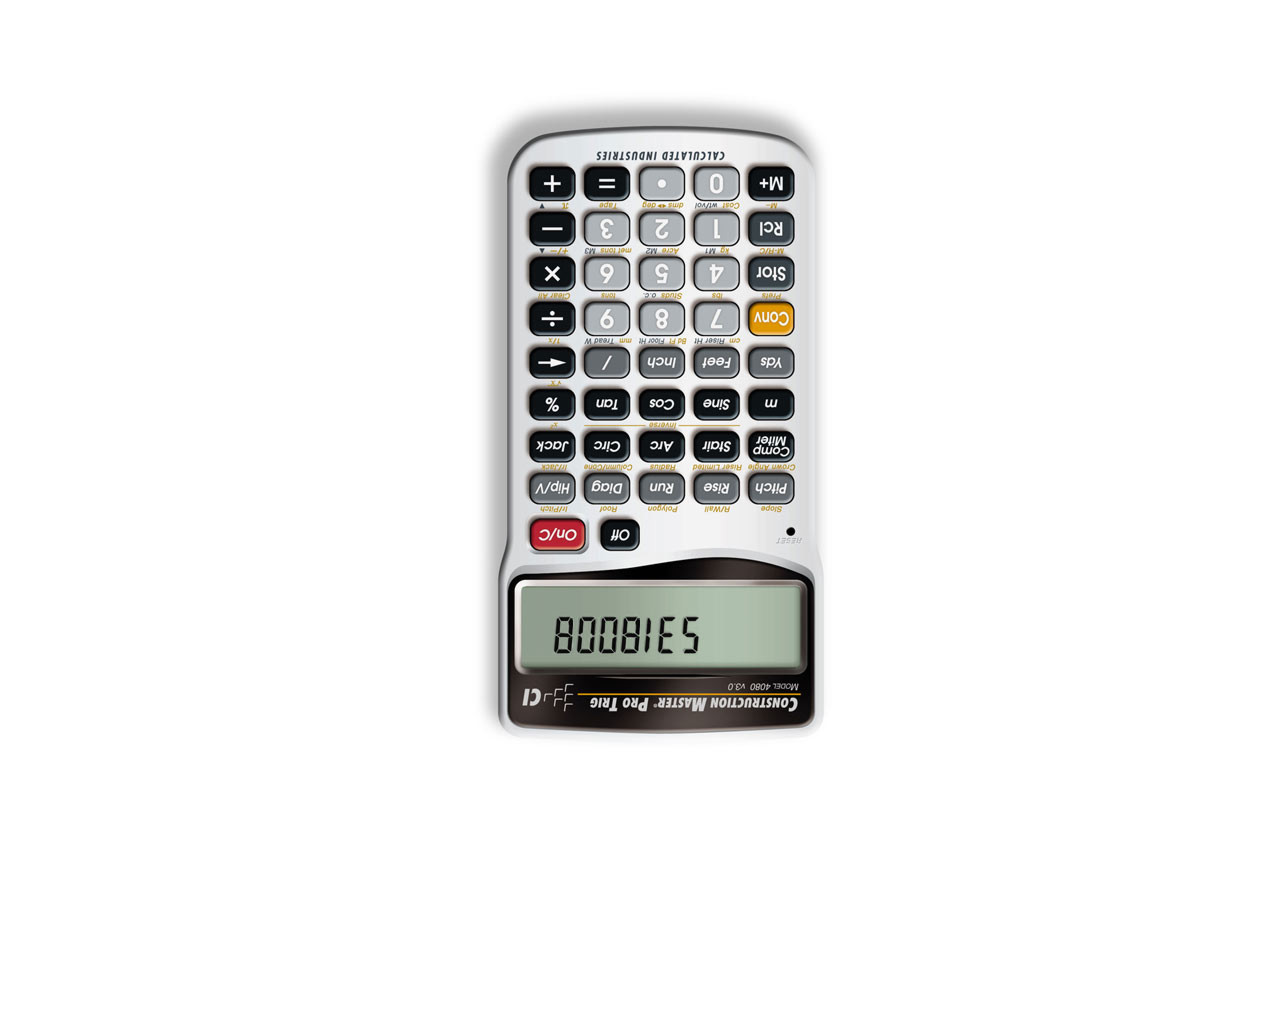 BOOBIES On A Calculator Funny Wallpaper   Background Bandit 1280x1024